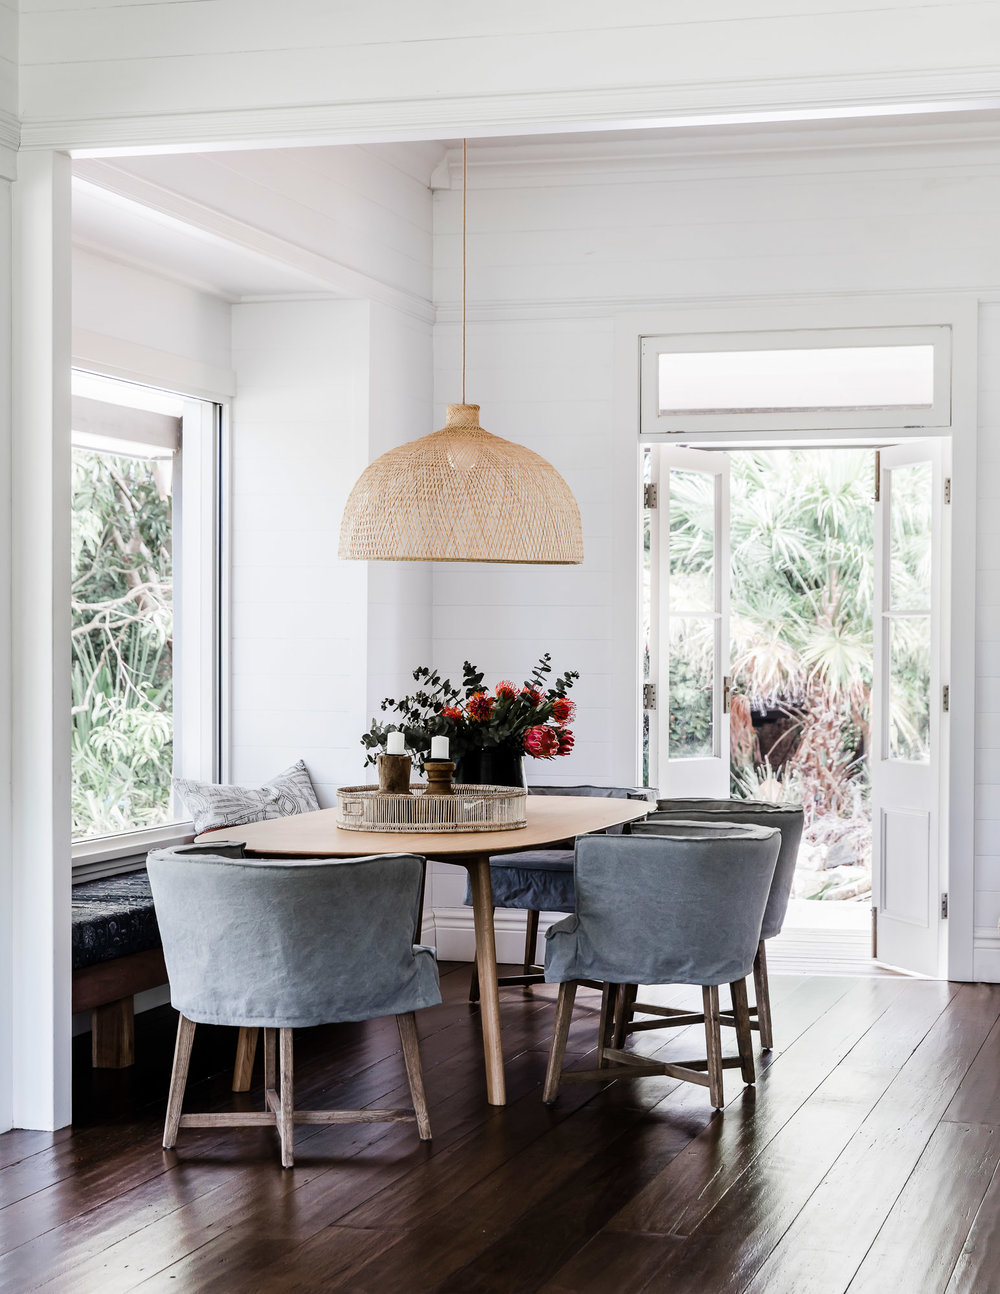 Bangalow_LouiseWalsh_Styled1_Project82.jpg